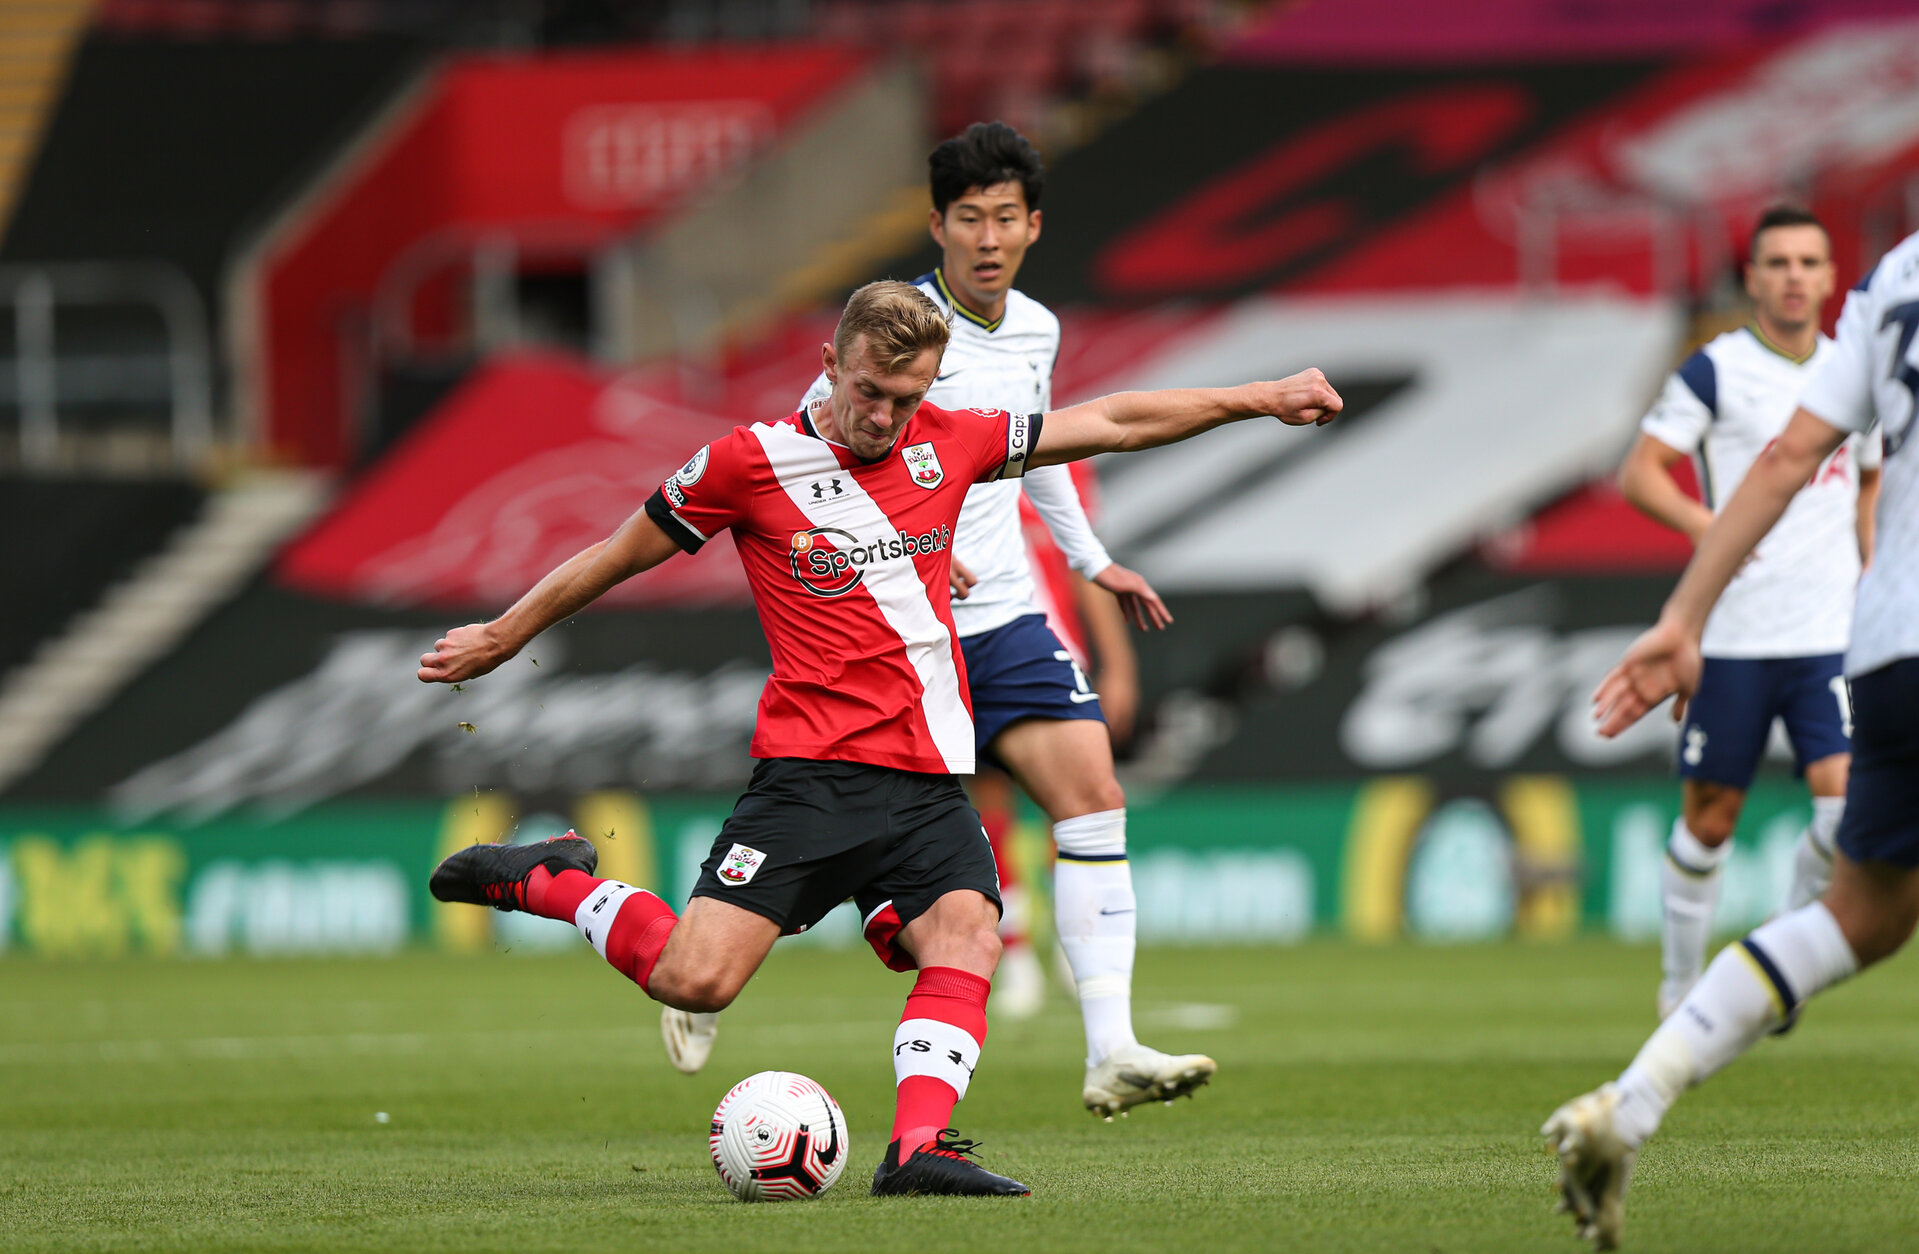 SOUTHAMPTON, ENGLAND - SEPTEMBER 20: James Ward-Prowse during the Premier League match between Southampton and Tottenham Hotspur at St Mary's Stadium on September 20, 2020 in Southampton, United Kingdom. (Photo by Chris Moorhouse/Southampton FC via Getty Images)